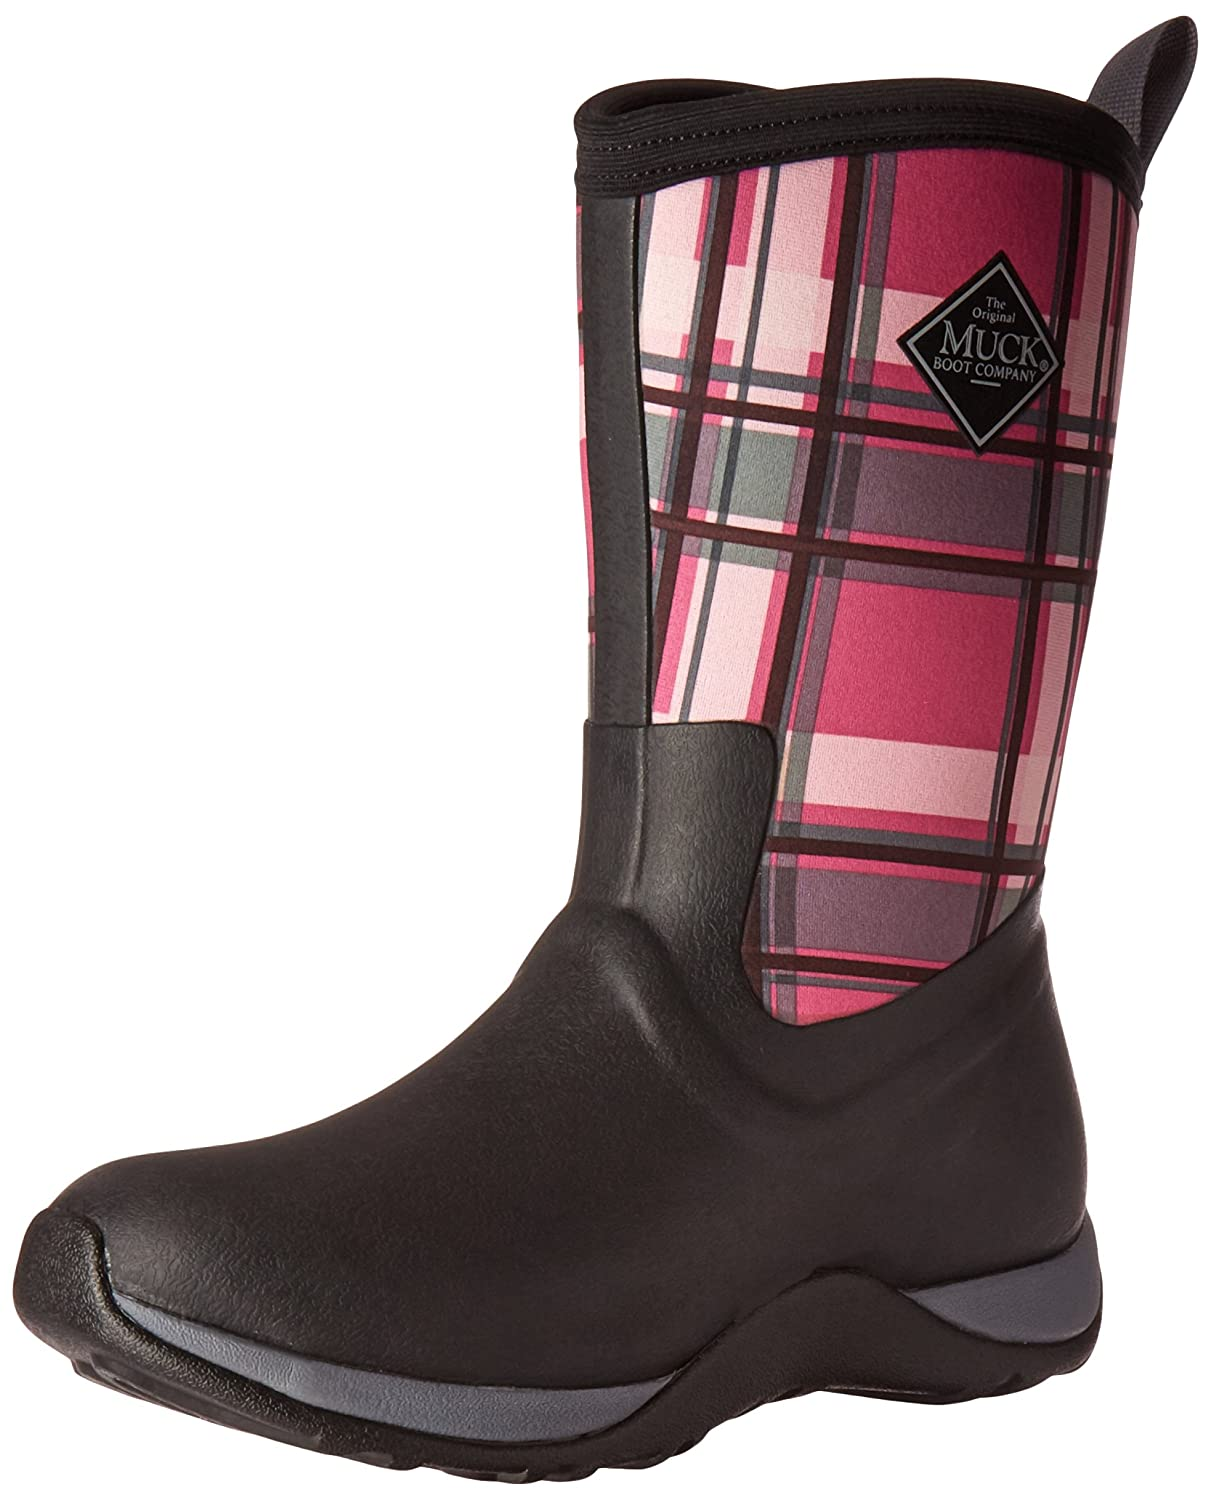 Muck Boot Women's Arctic Weekend Mid Snow B00TT371RY 9 B(M) US|Black/Pink Plaid